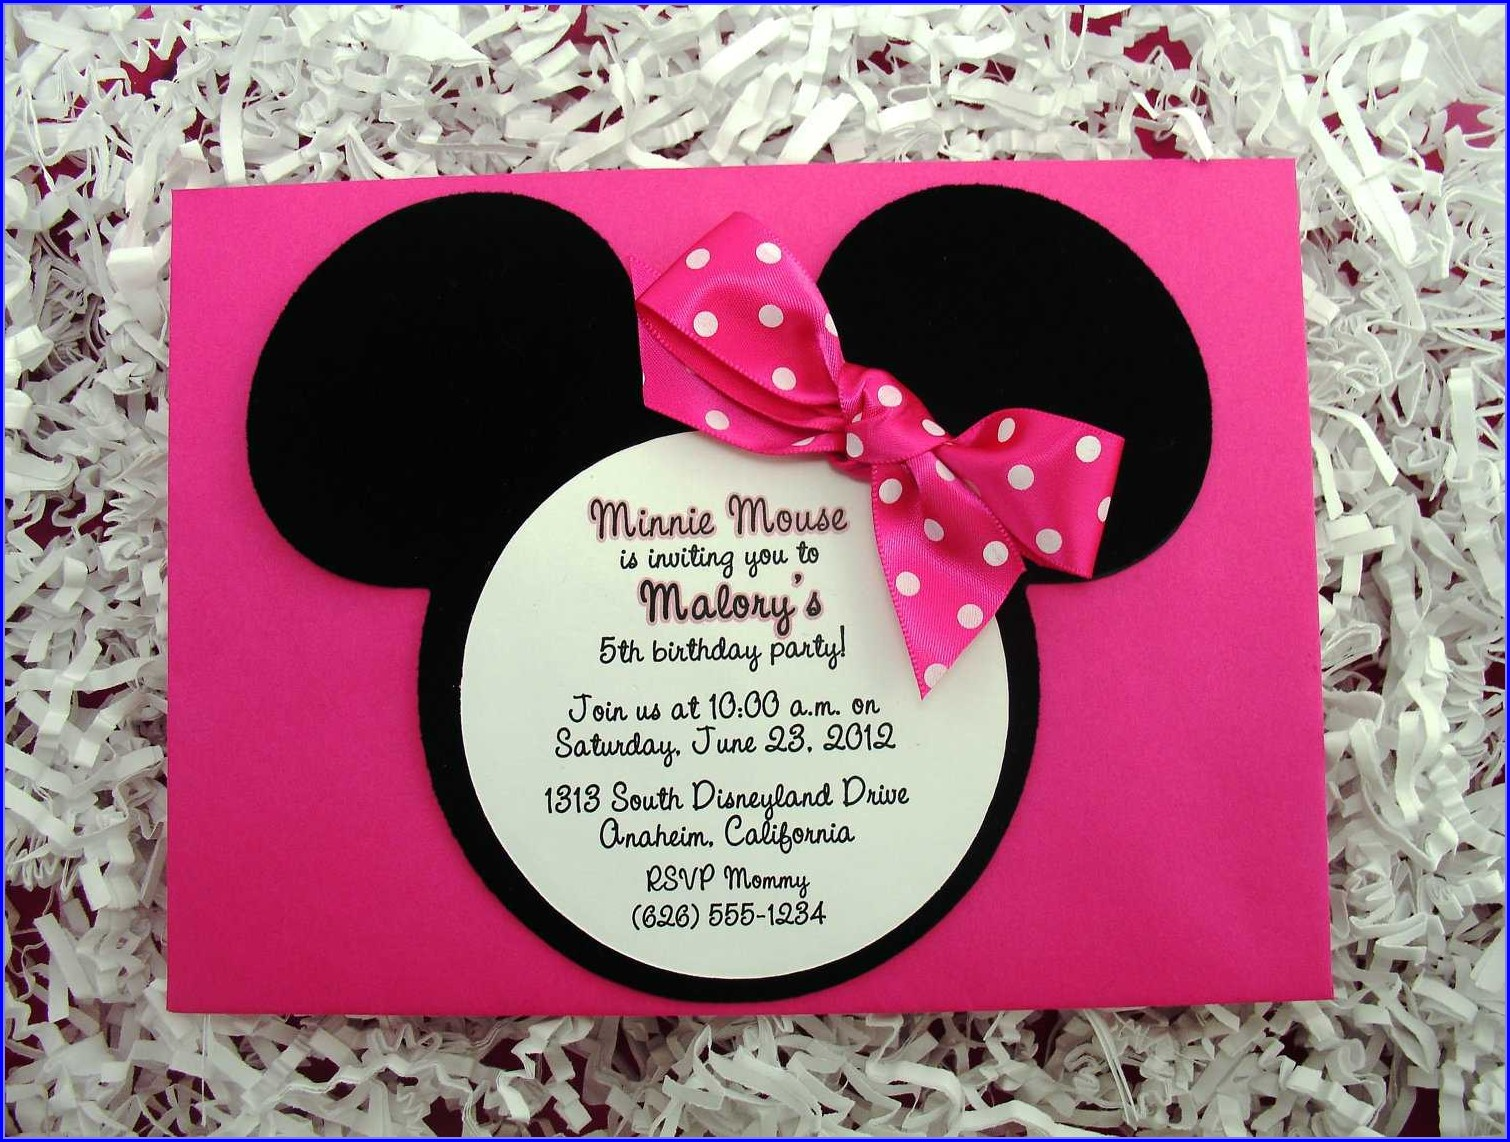 Minnie Mouse Party Invitations Templates